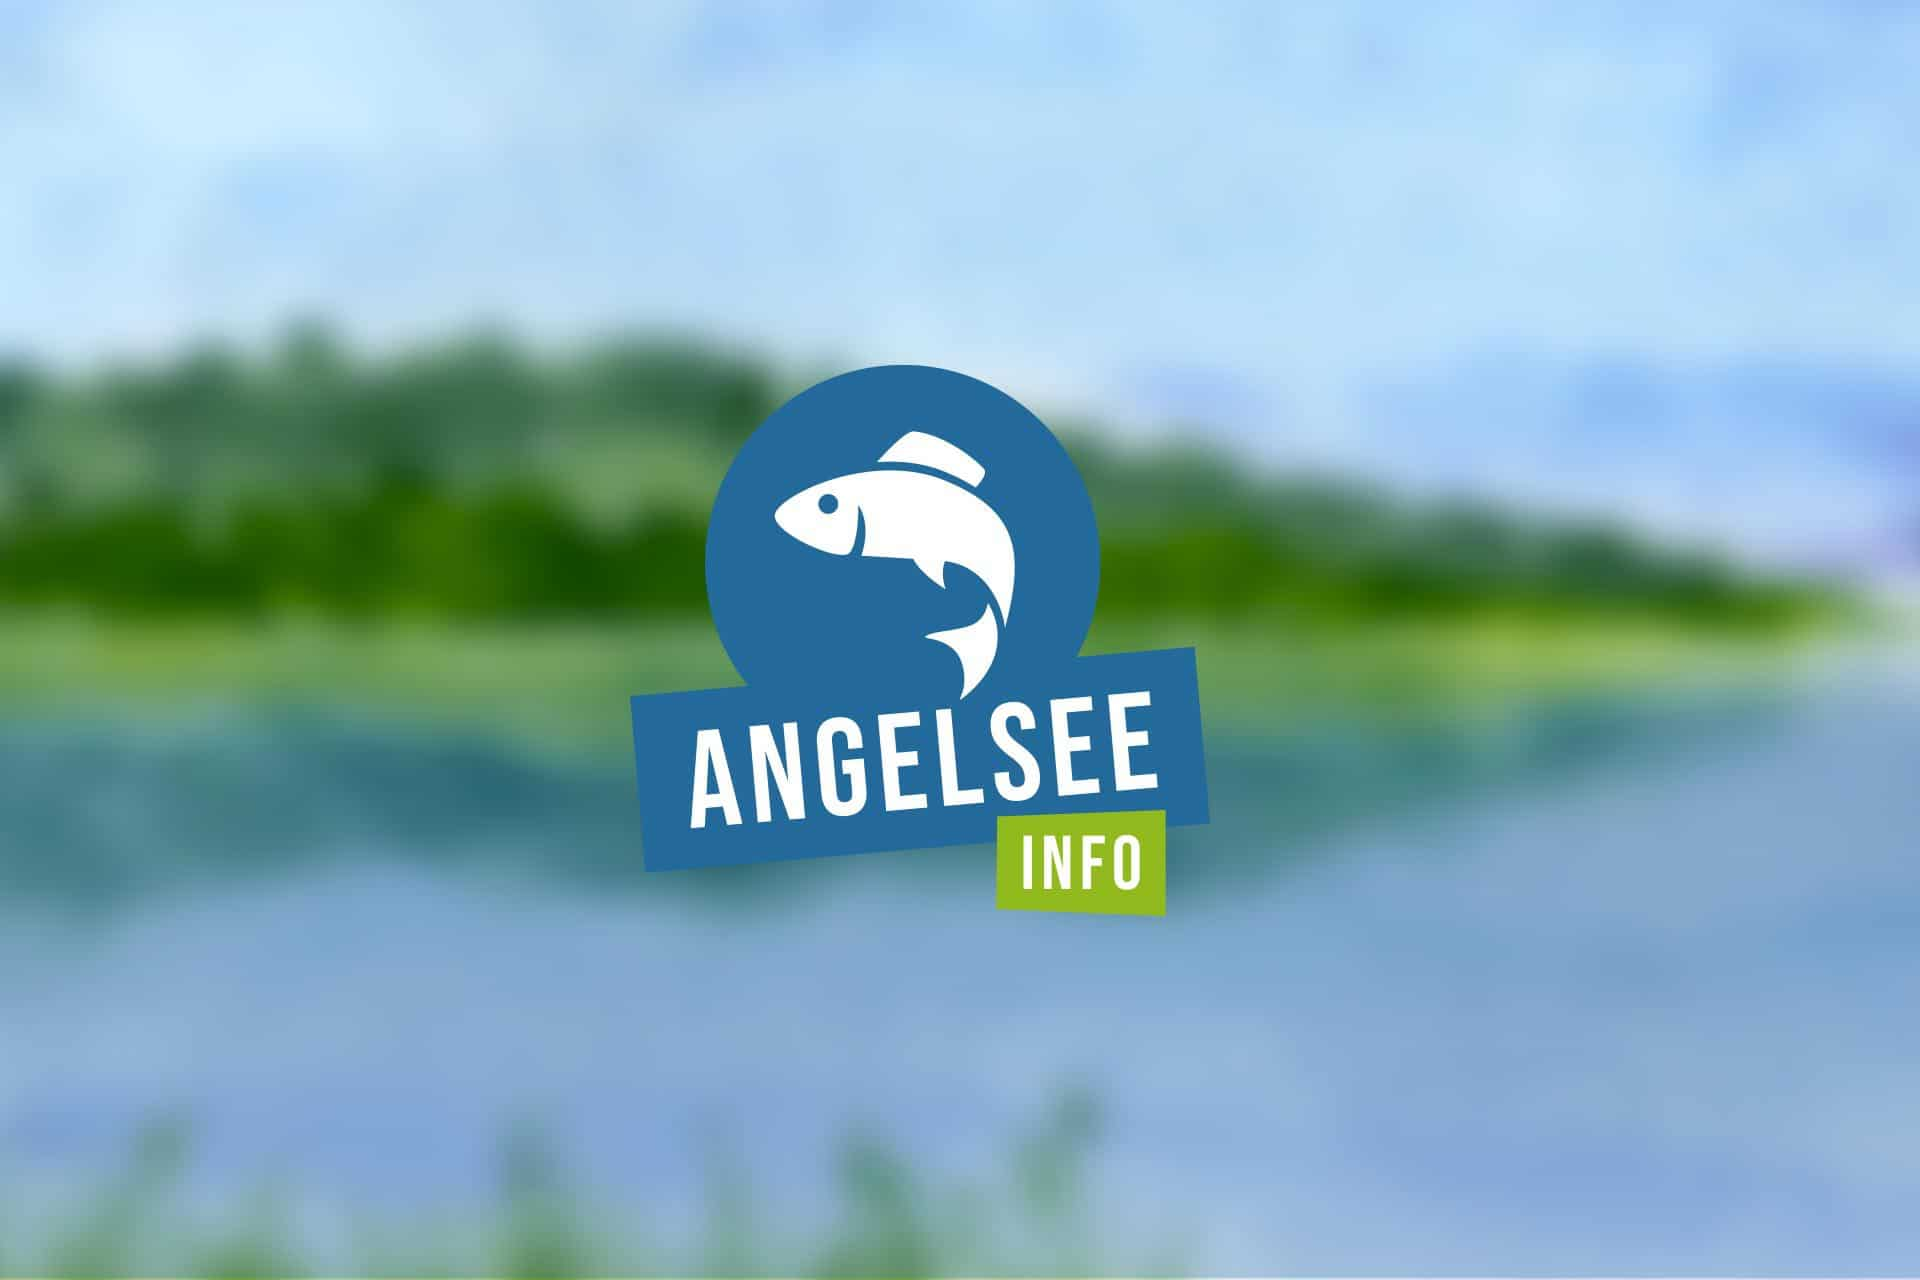 Angelsee